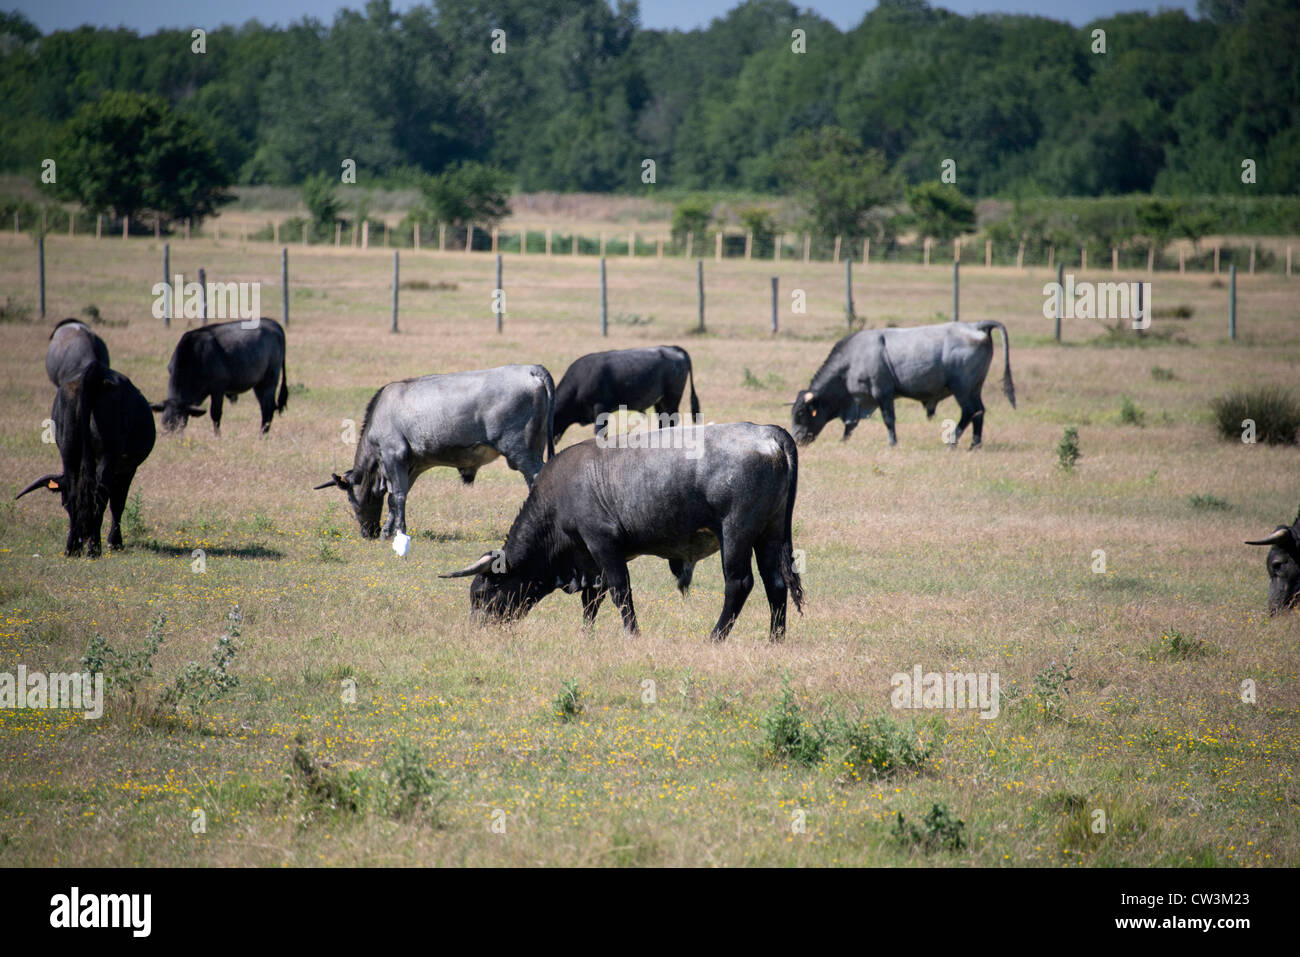 Bulls graze in field in Camargue region of South of France Provence near Arles - Stock Image